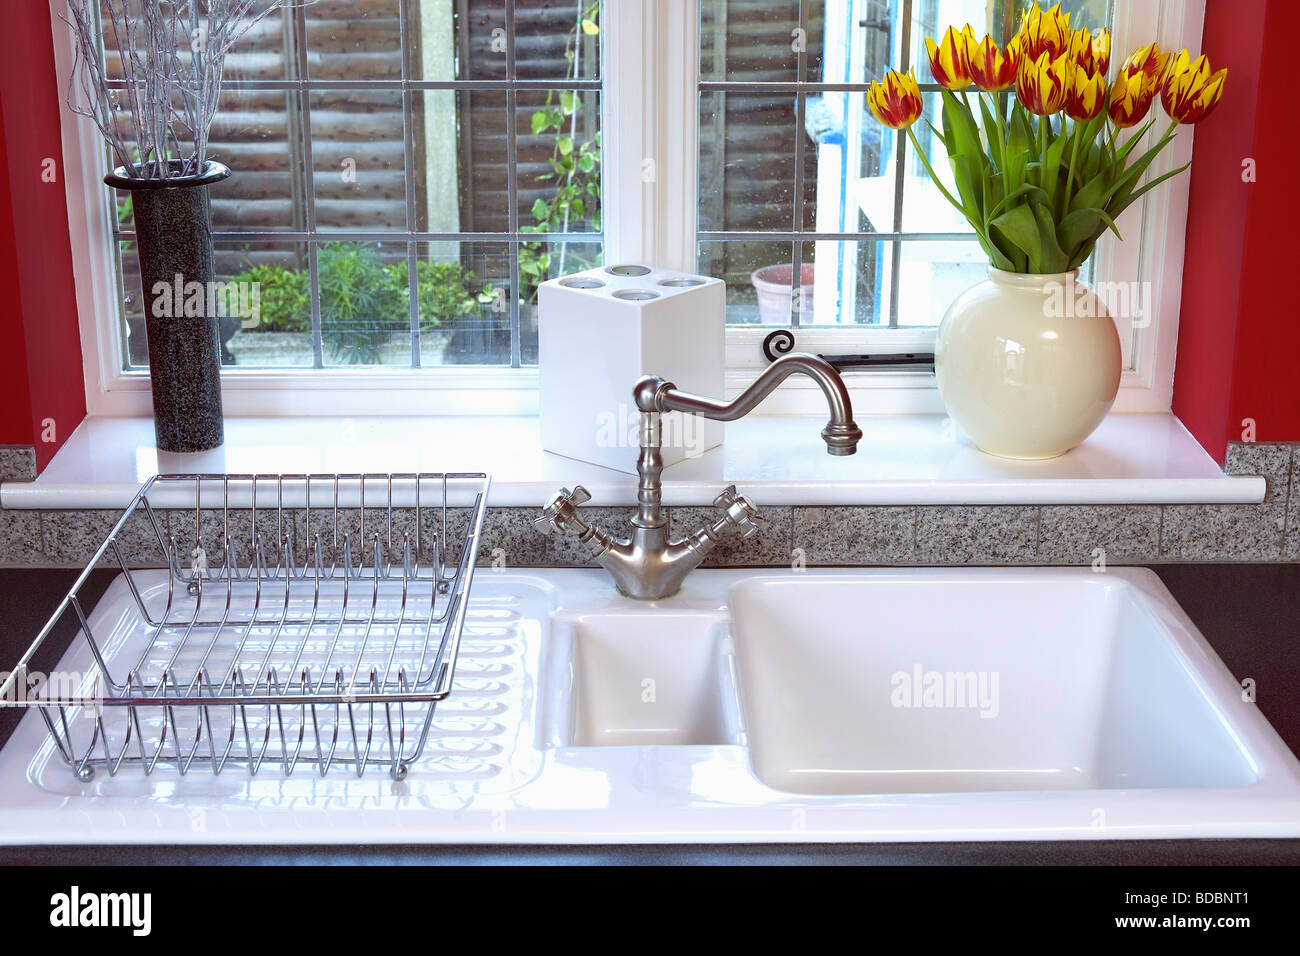 Orange Tulips In Vase On Window Sill Above White Porcelain Sink With Metal  Draining Basket And